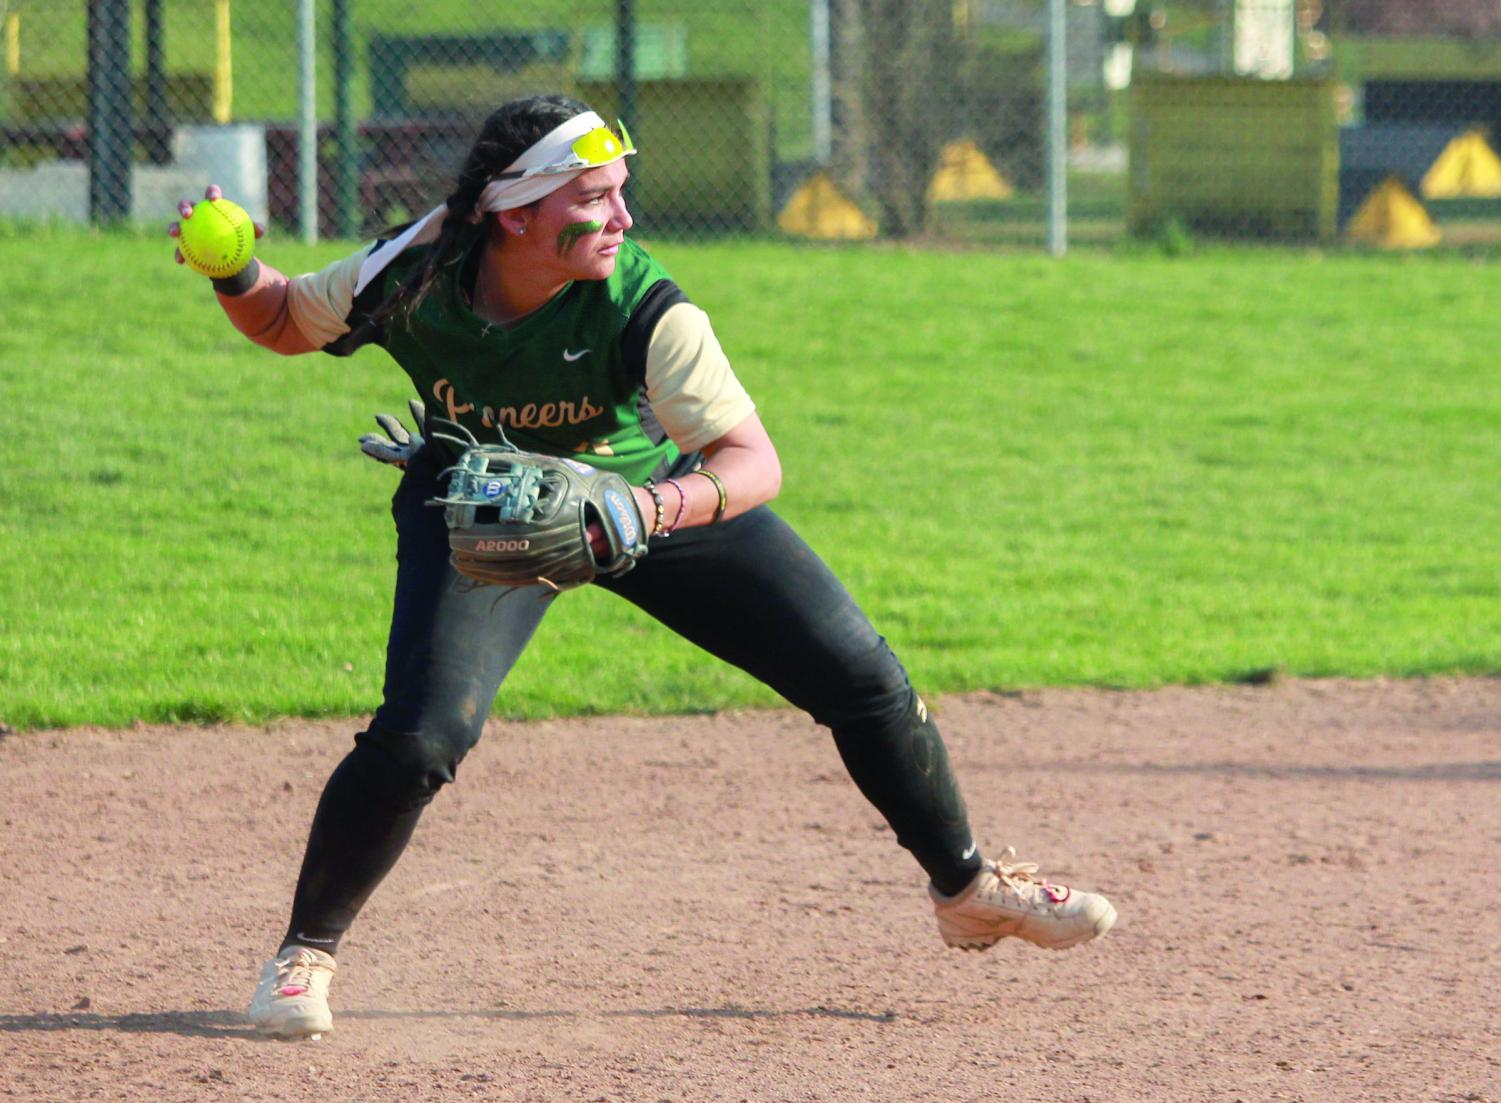 Senior infielder Lily Pruneda dives for the ball during the first game against Carlow on Saturday. Pruneda appeared at bat four times during the double header and registered two sacrifice hits. Point Park is 1-1 in RSC play.